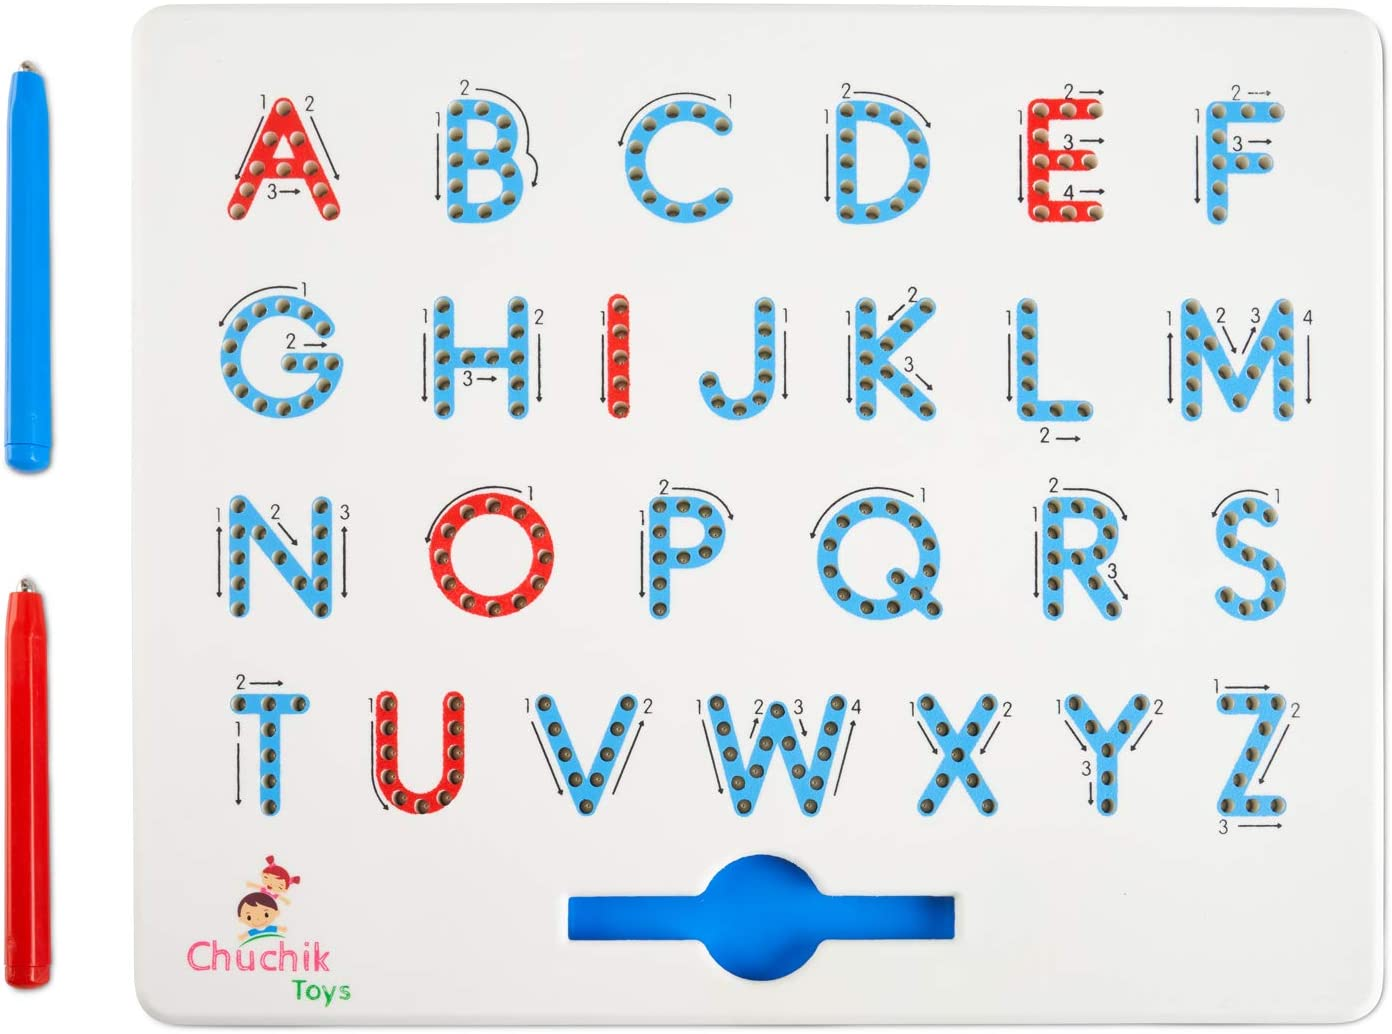 CHUCHIK Toys Magnapad Magnetic Drawing Board – Interactive Alphabet Letter Tracing Board Game for Ages 3-5 – Portable Kids Writing Board and 2 Pen Magnets for Educational Play and Alphabet Games(Blue-